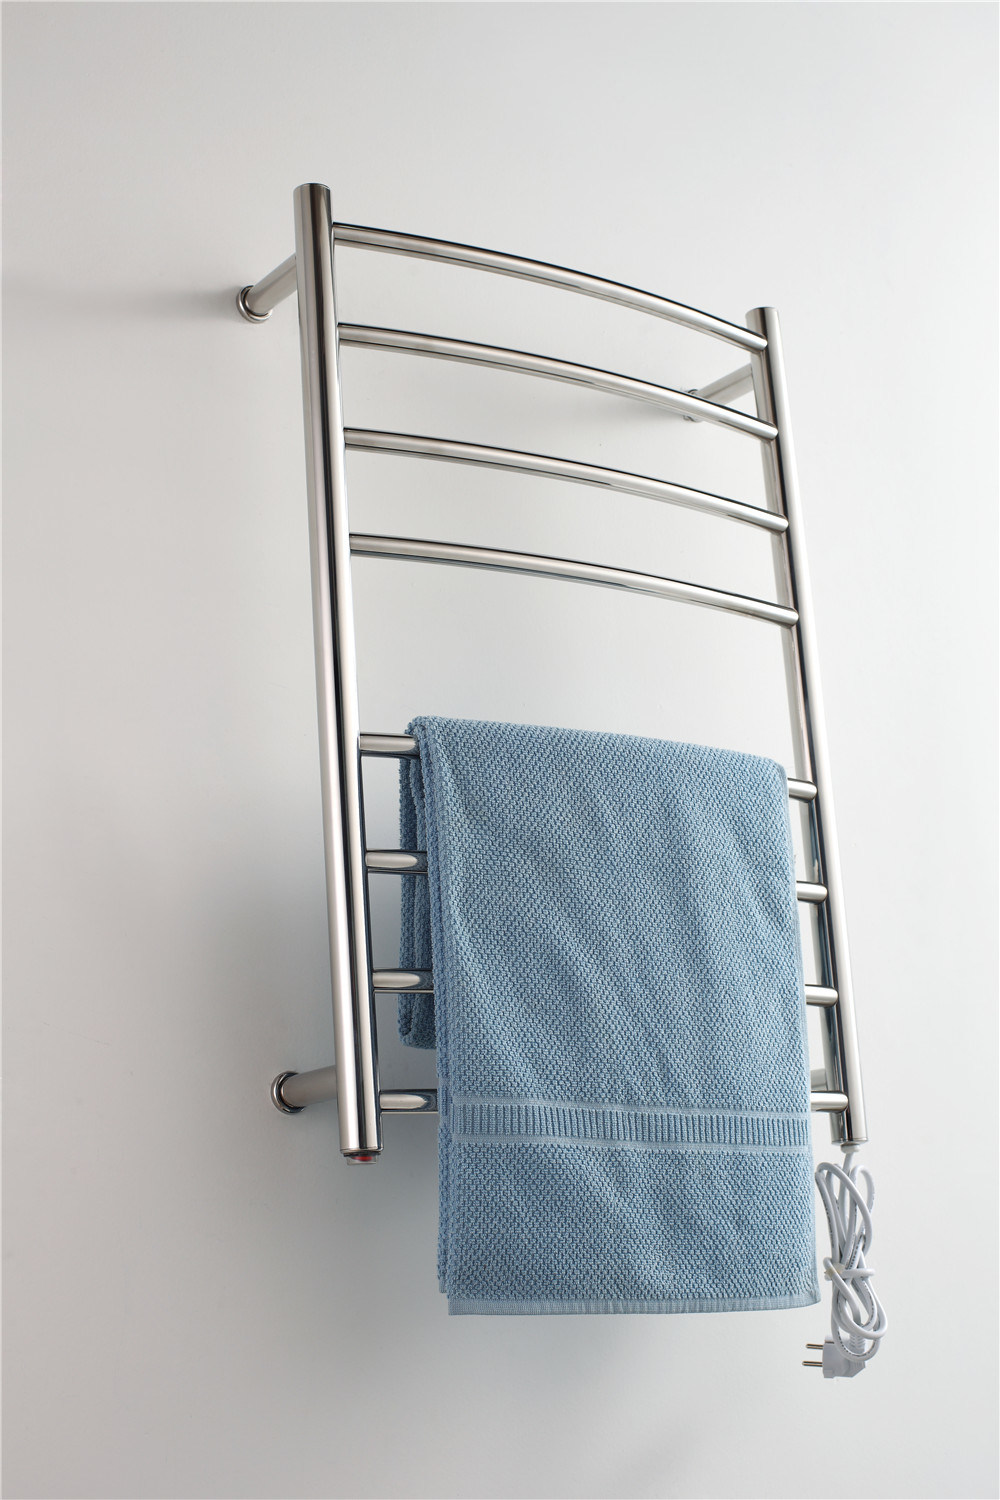 Low Price Guaranteed Electric Towel Rail Heater for Bathroom